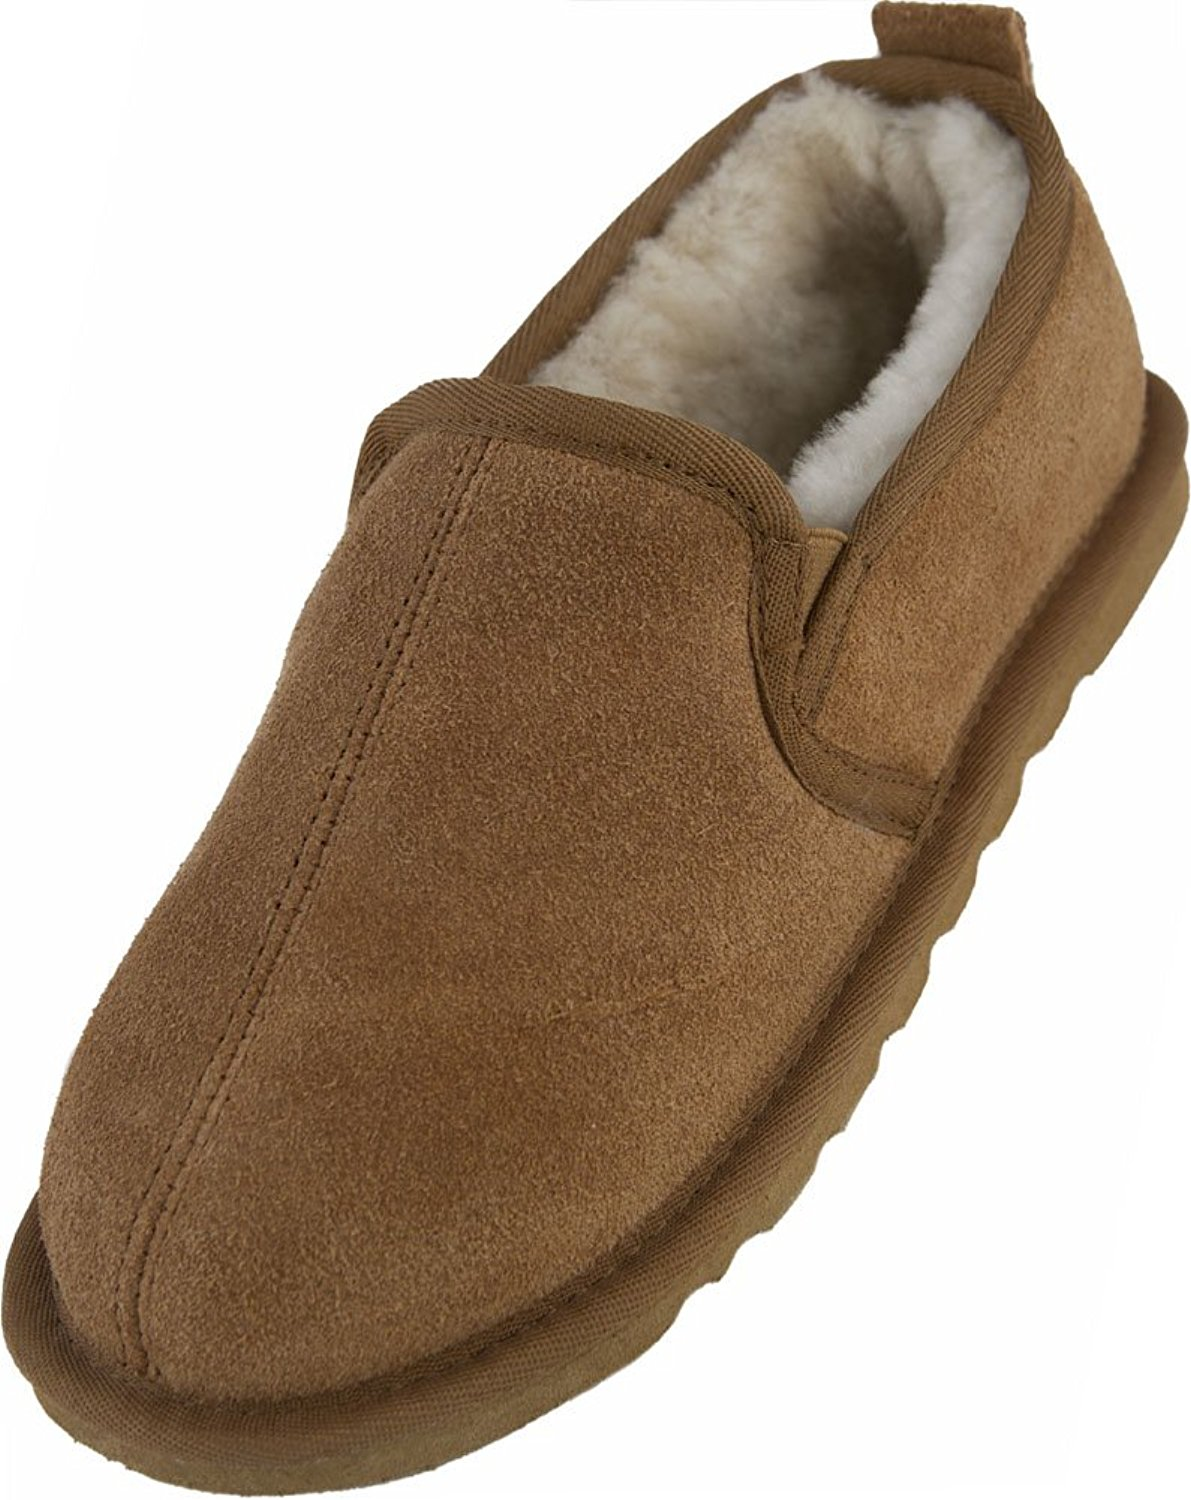 a3c23ab3869 Get Quotations · Lambland Mens   Gents Full Sheepskin Lined Slipper Boot in  Chestnut   Size UK7